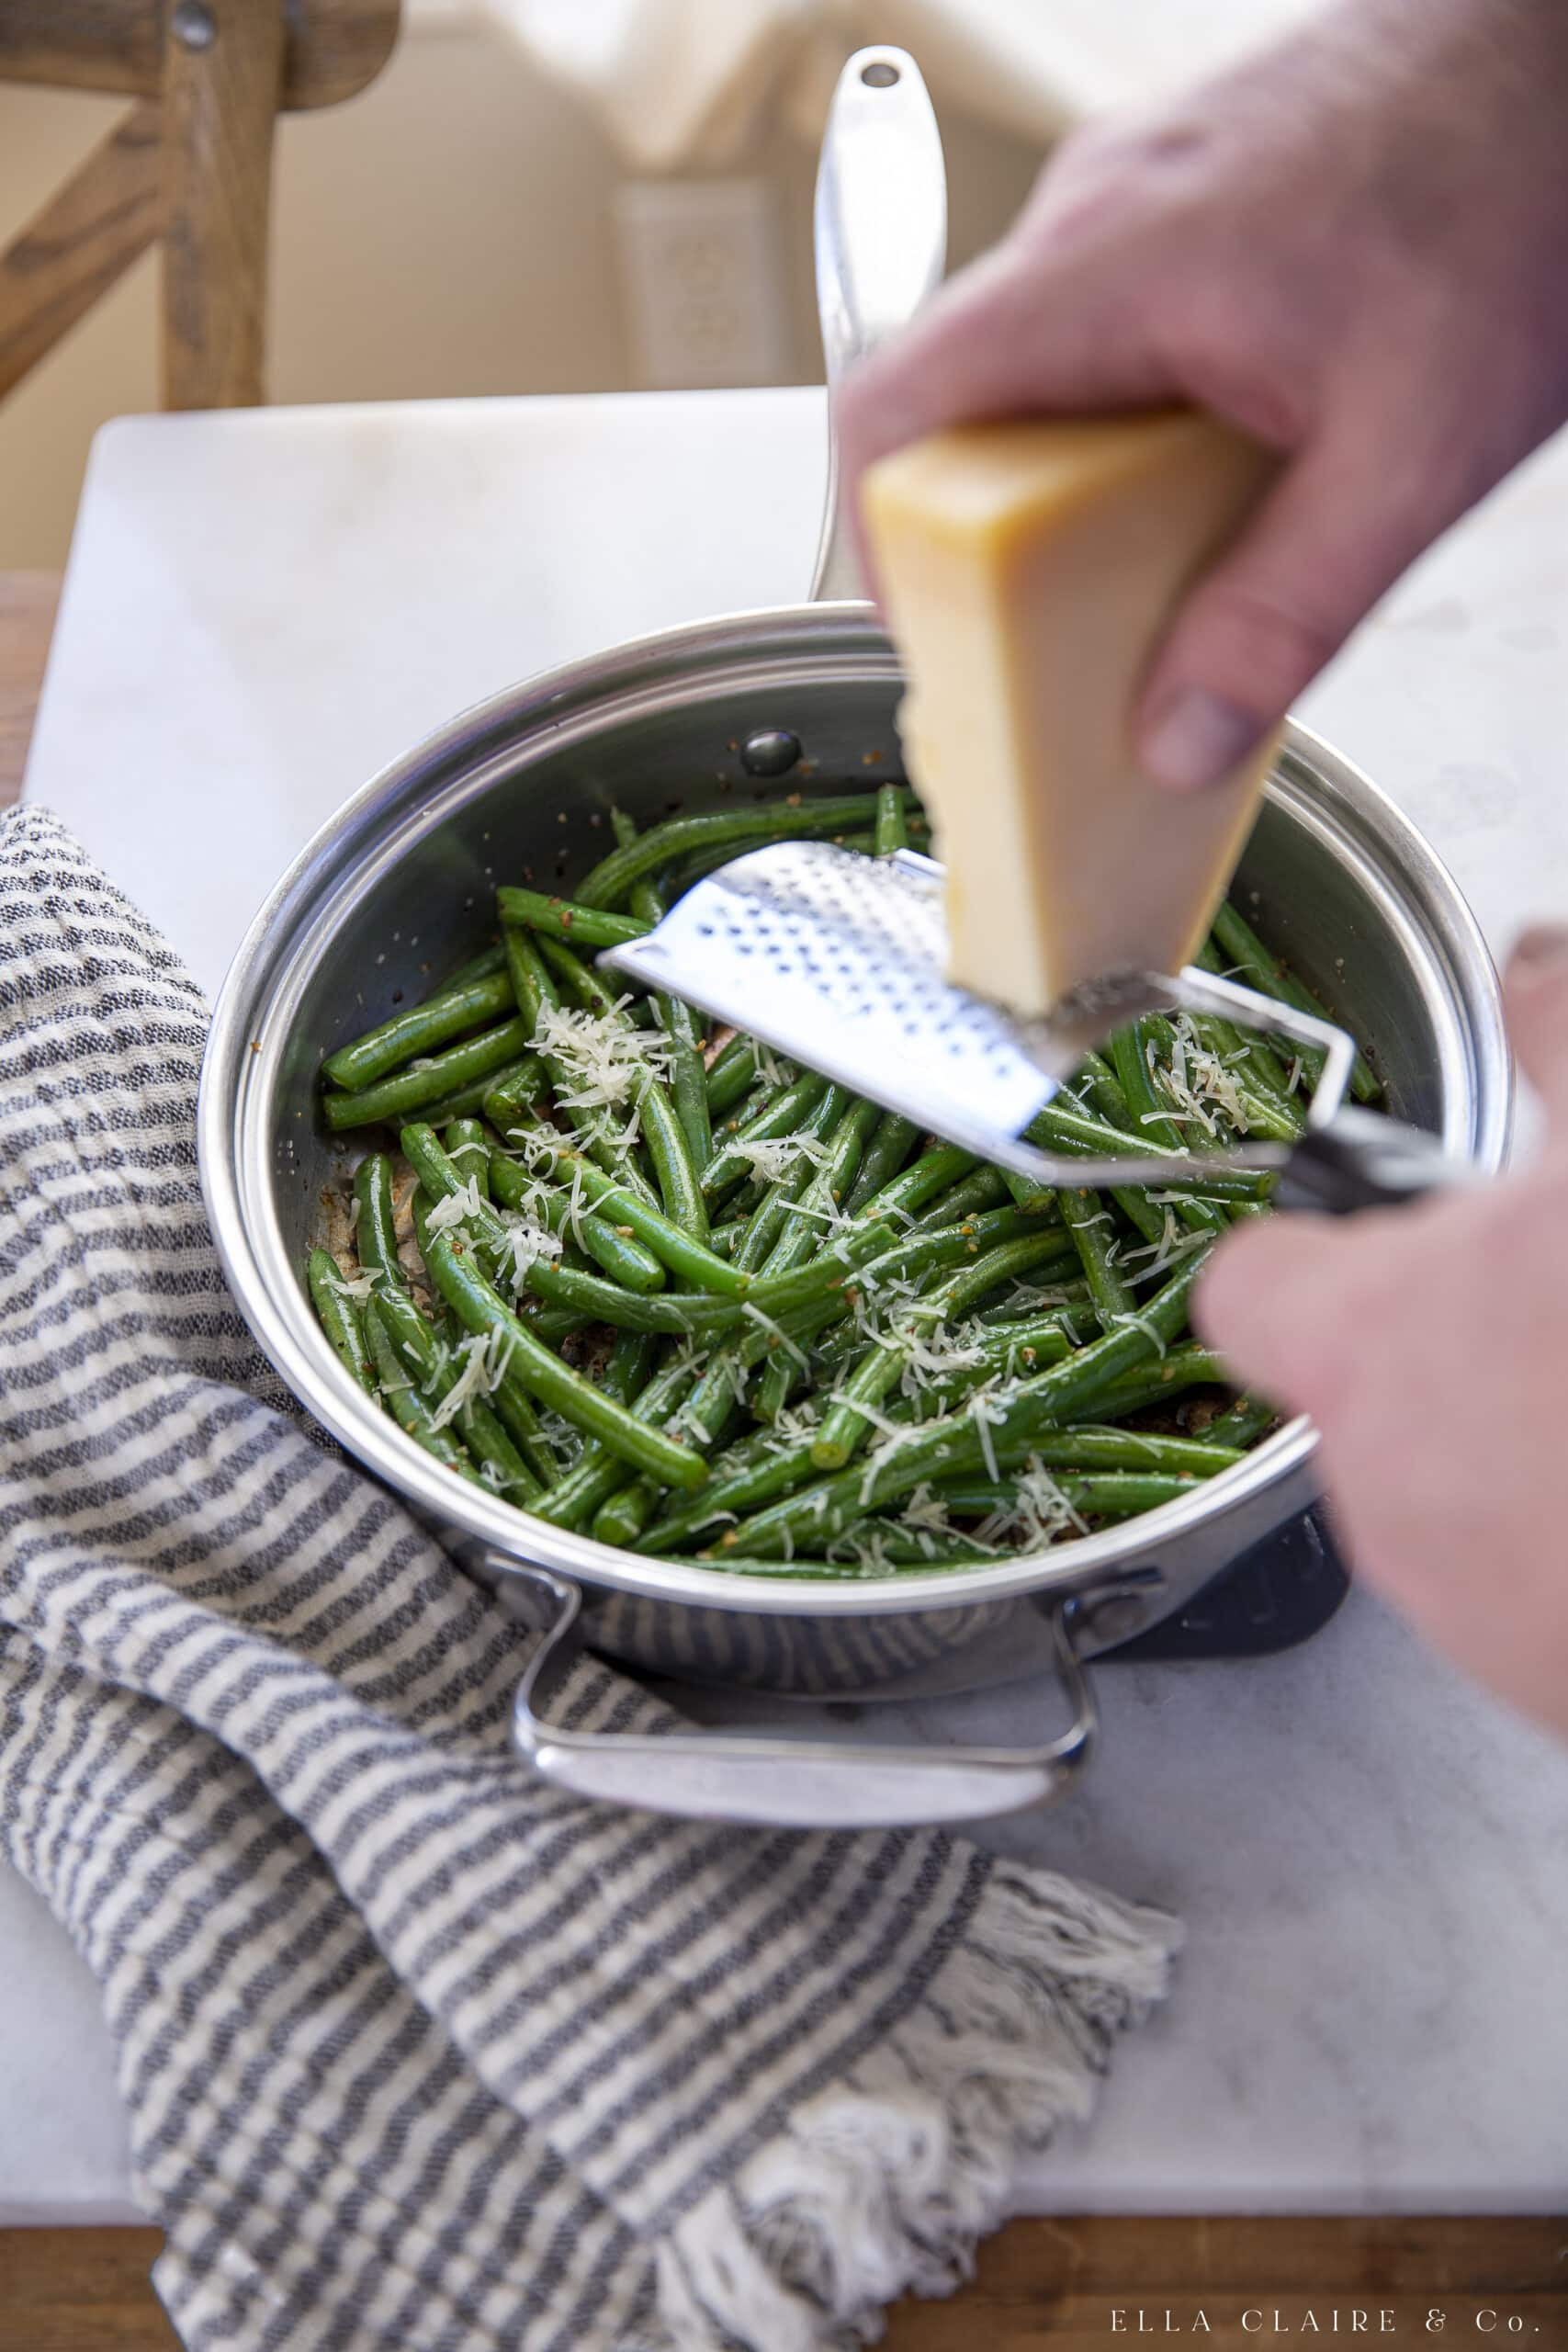 Freshly grating parmesan cheese over sautéed green beans.